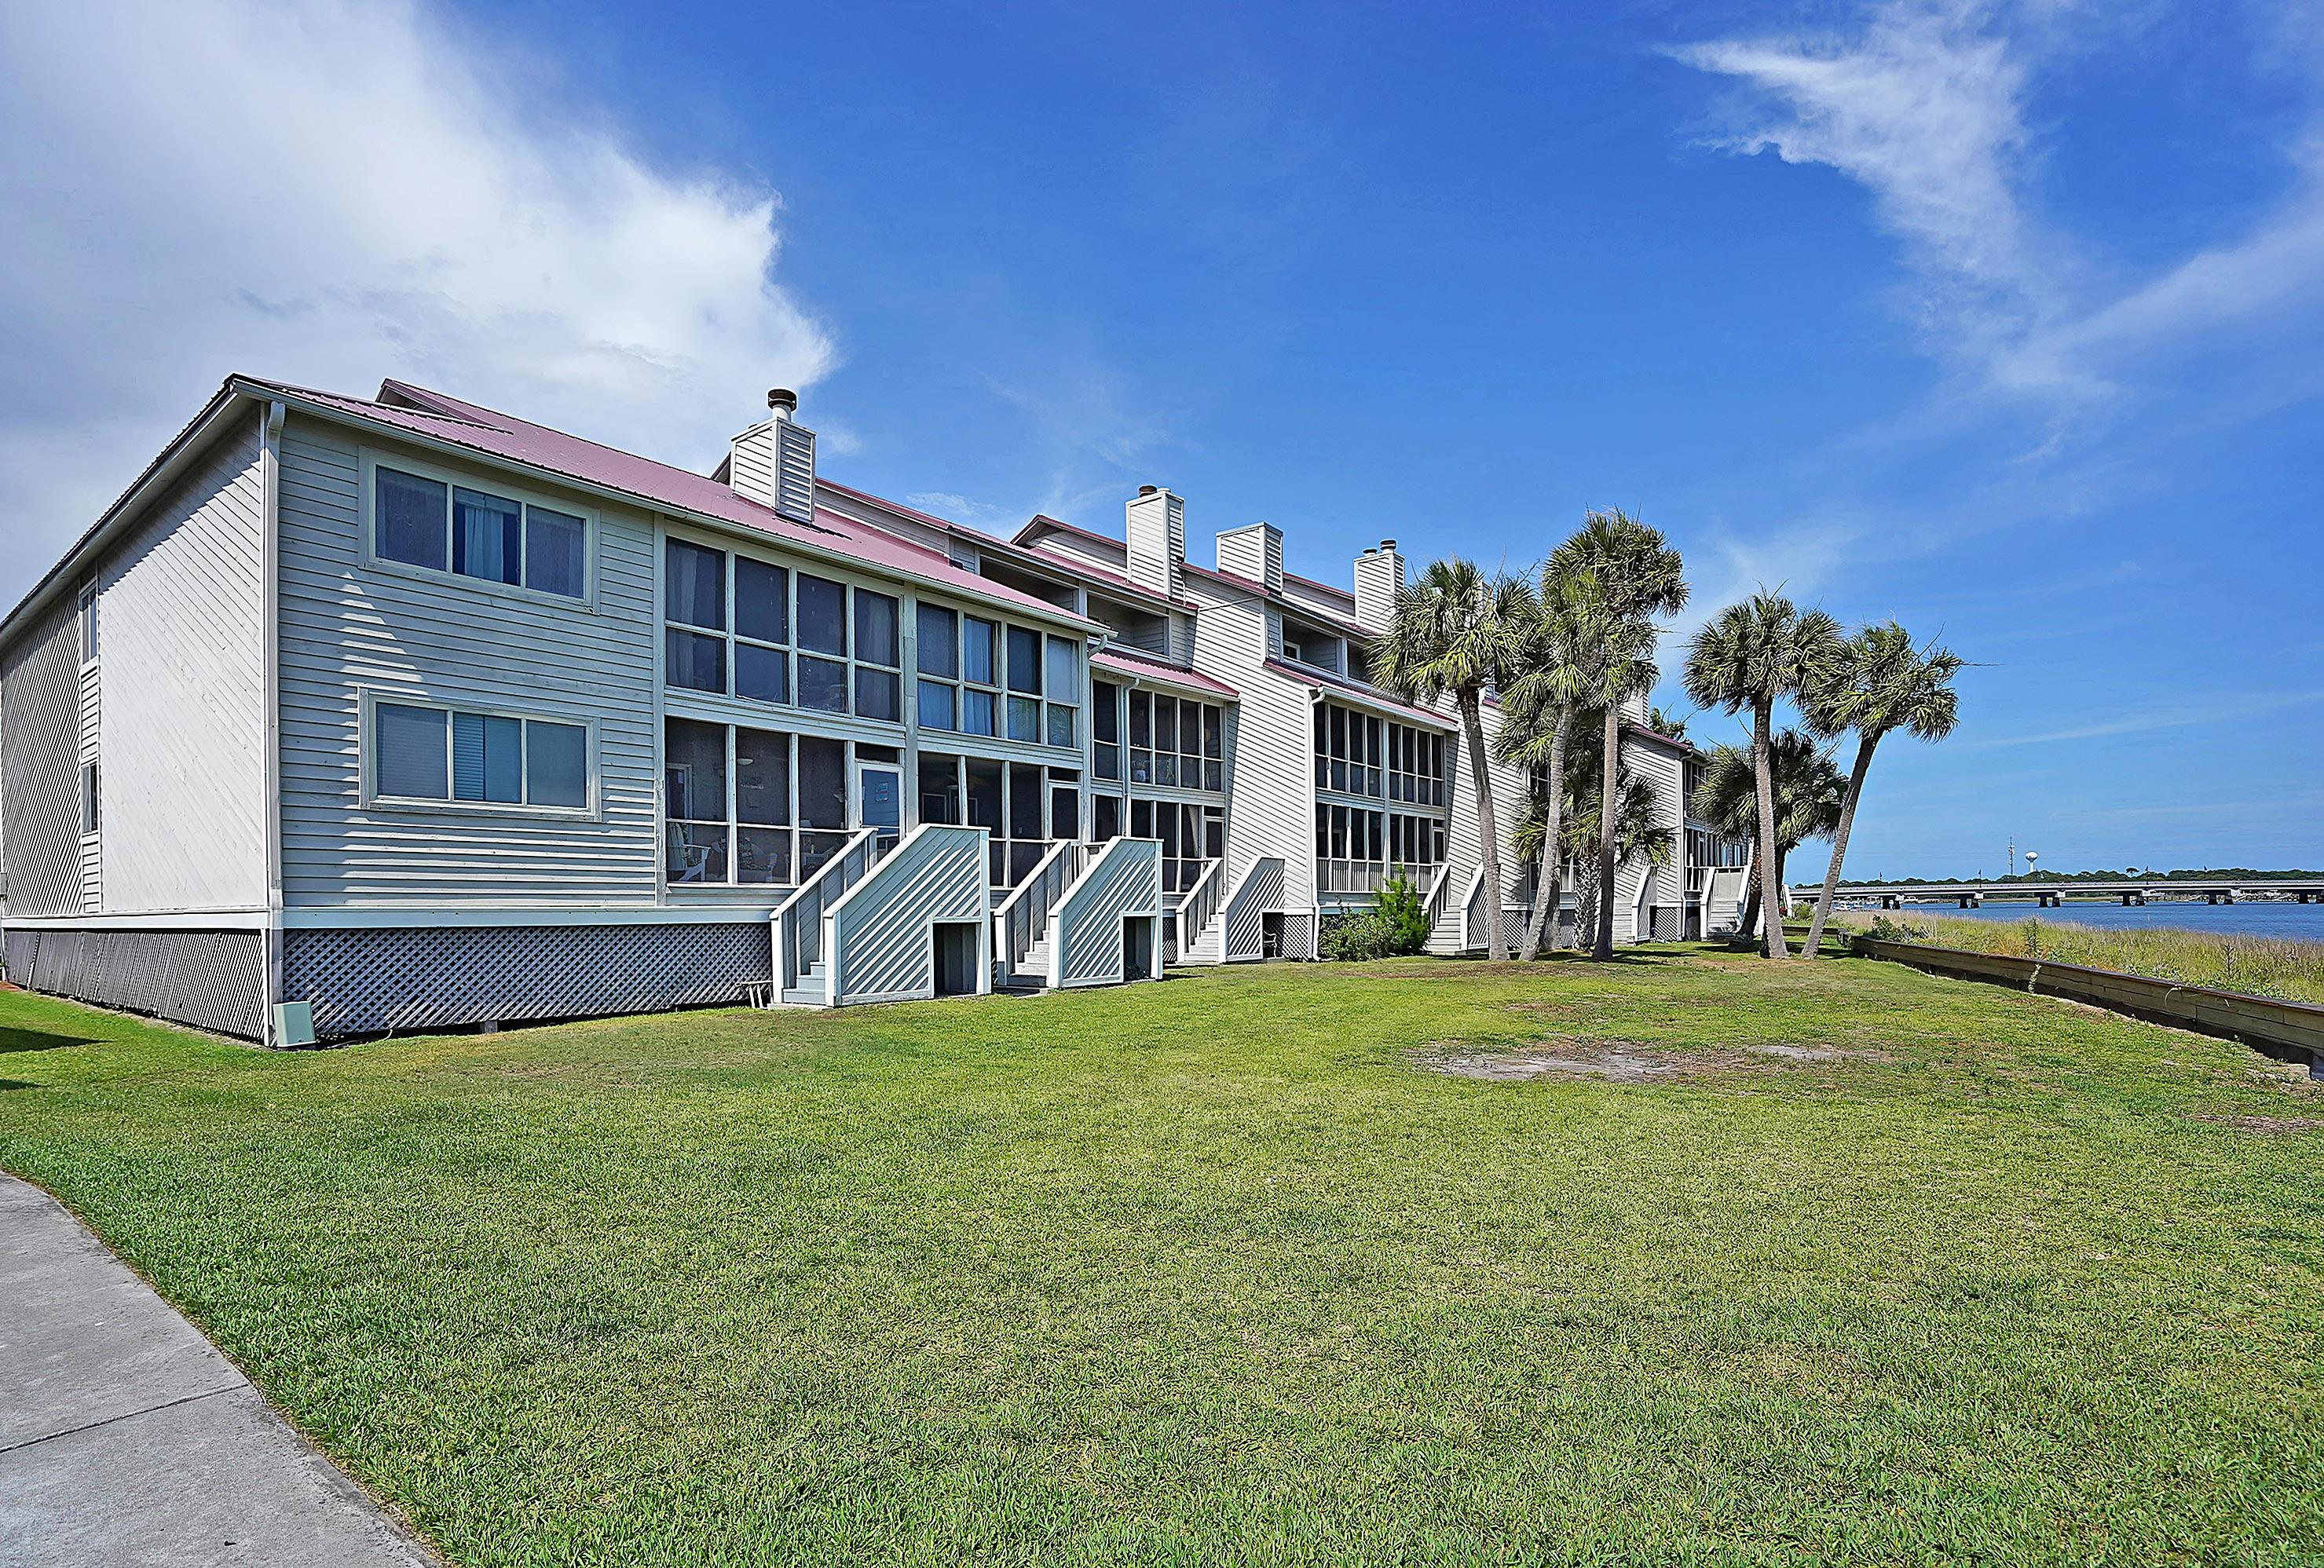 Mariners Cay Homes For Sale - 63 Mariners Cay, Folly Beach, SC - 18